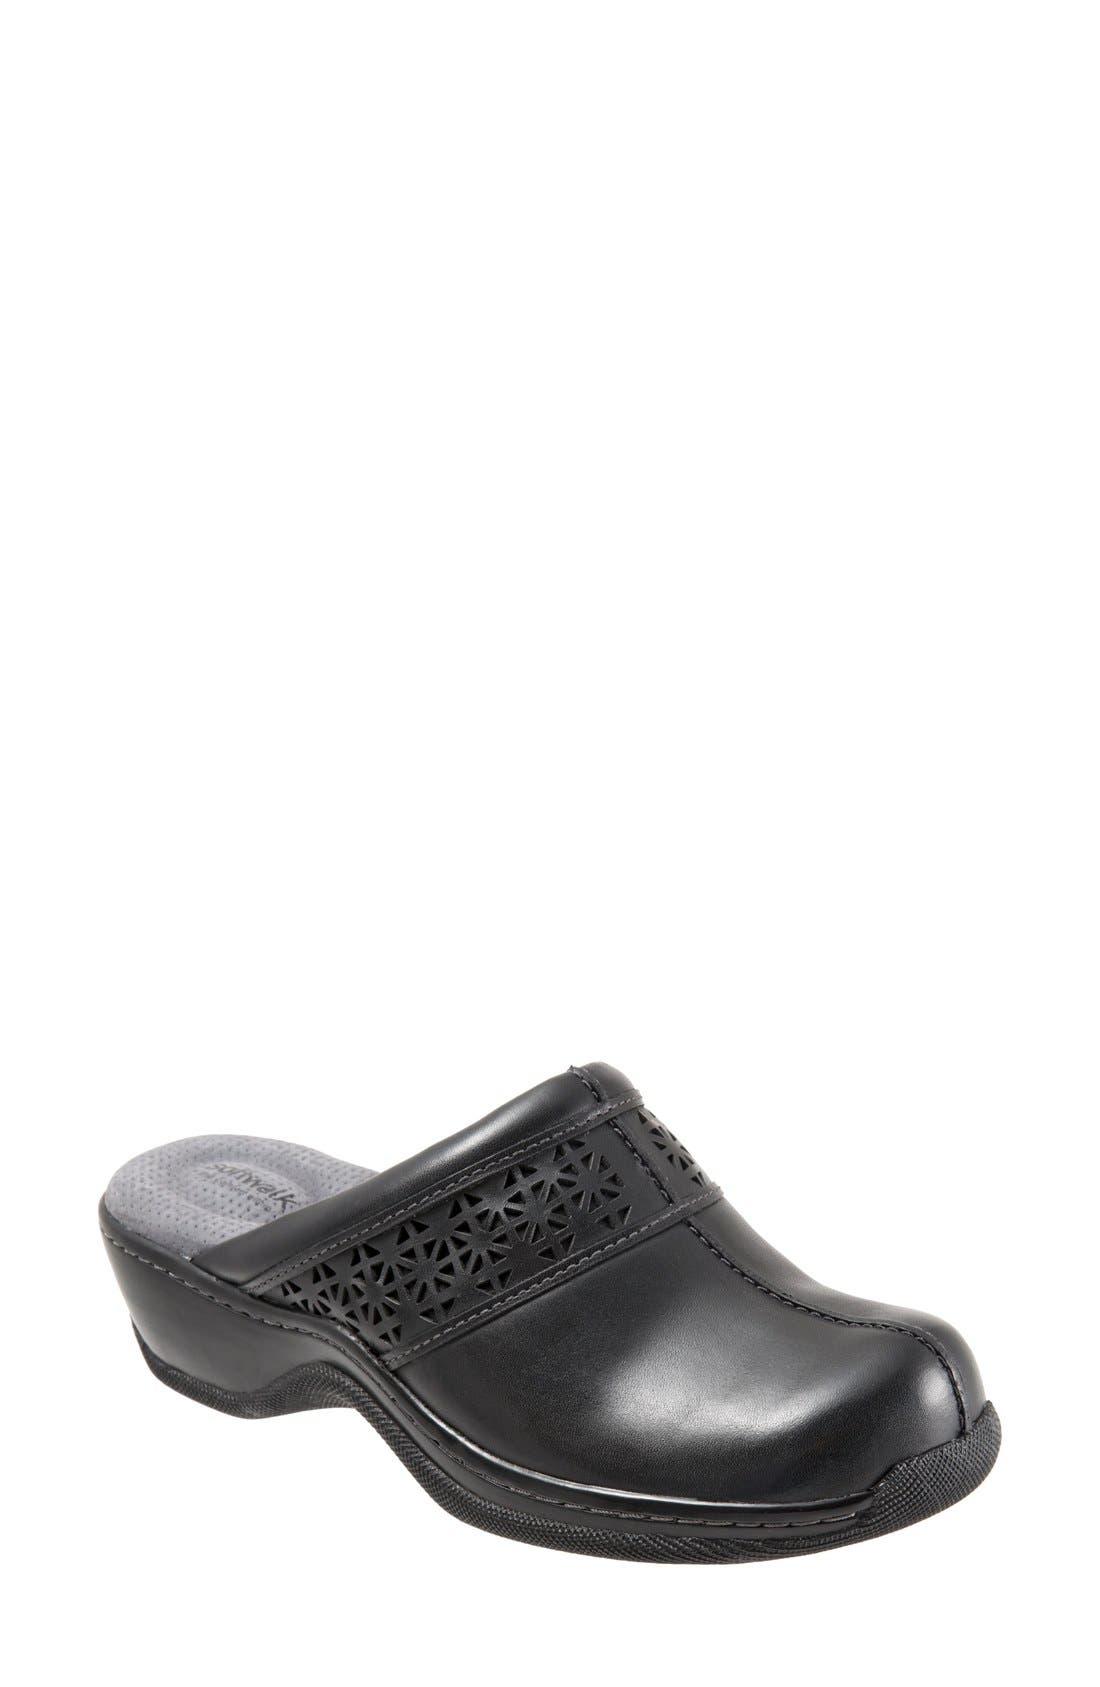 SOFTWALK<SUP>®</SUP> 'Abby' Clog, Main, color, BLACK LEATHER